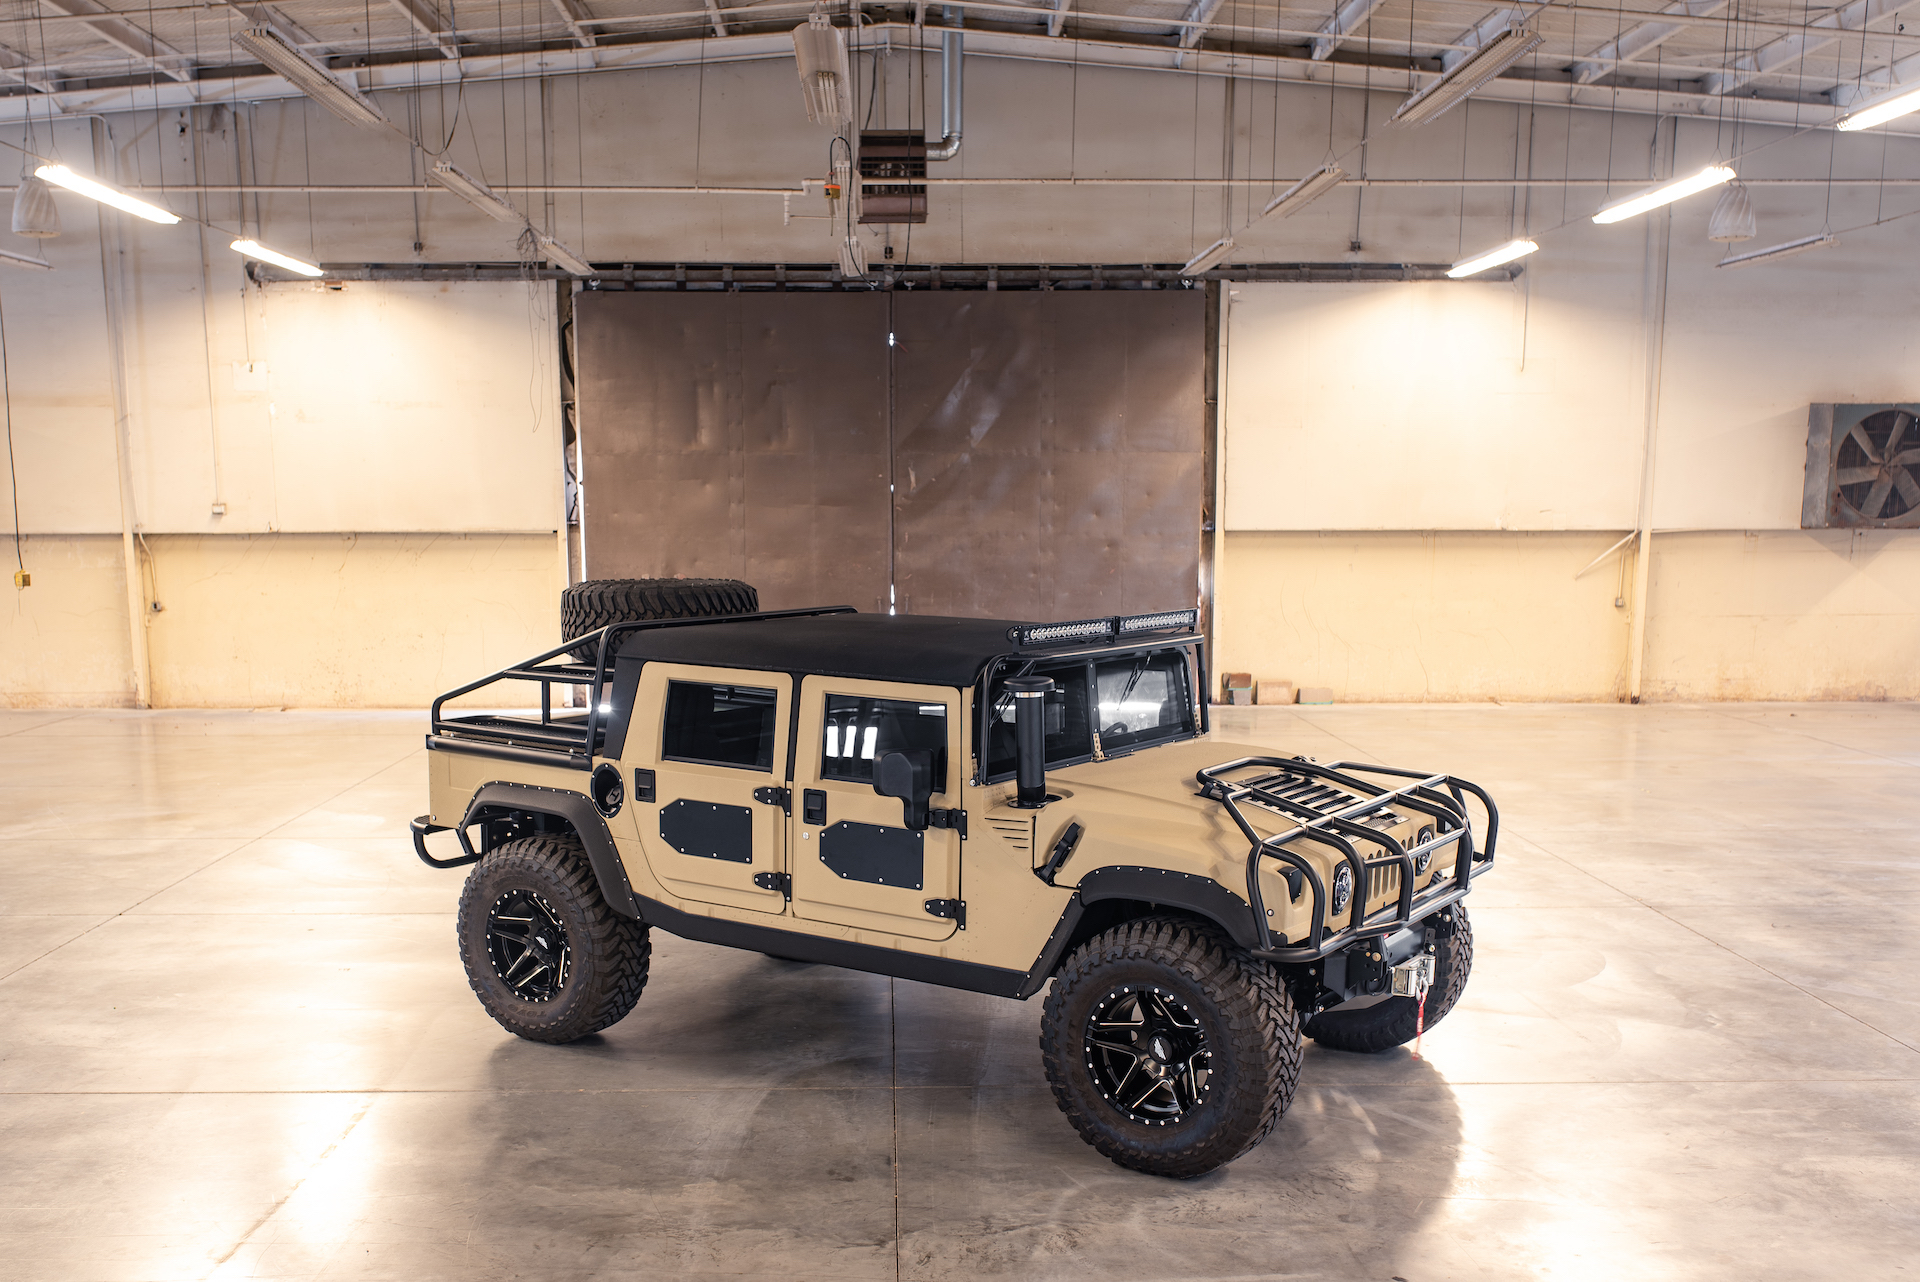 2019 Hummer H1 Price, Concept, Specs >> Mil Spec S Latest Hummer H1 Is A Baja Beast